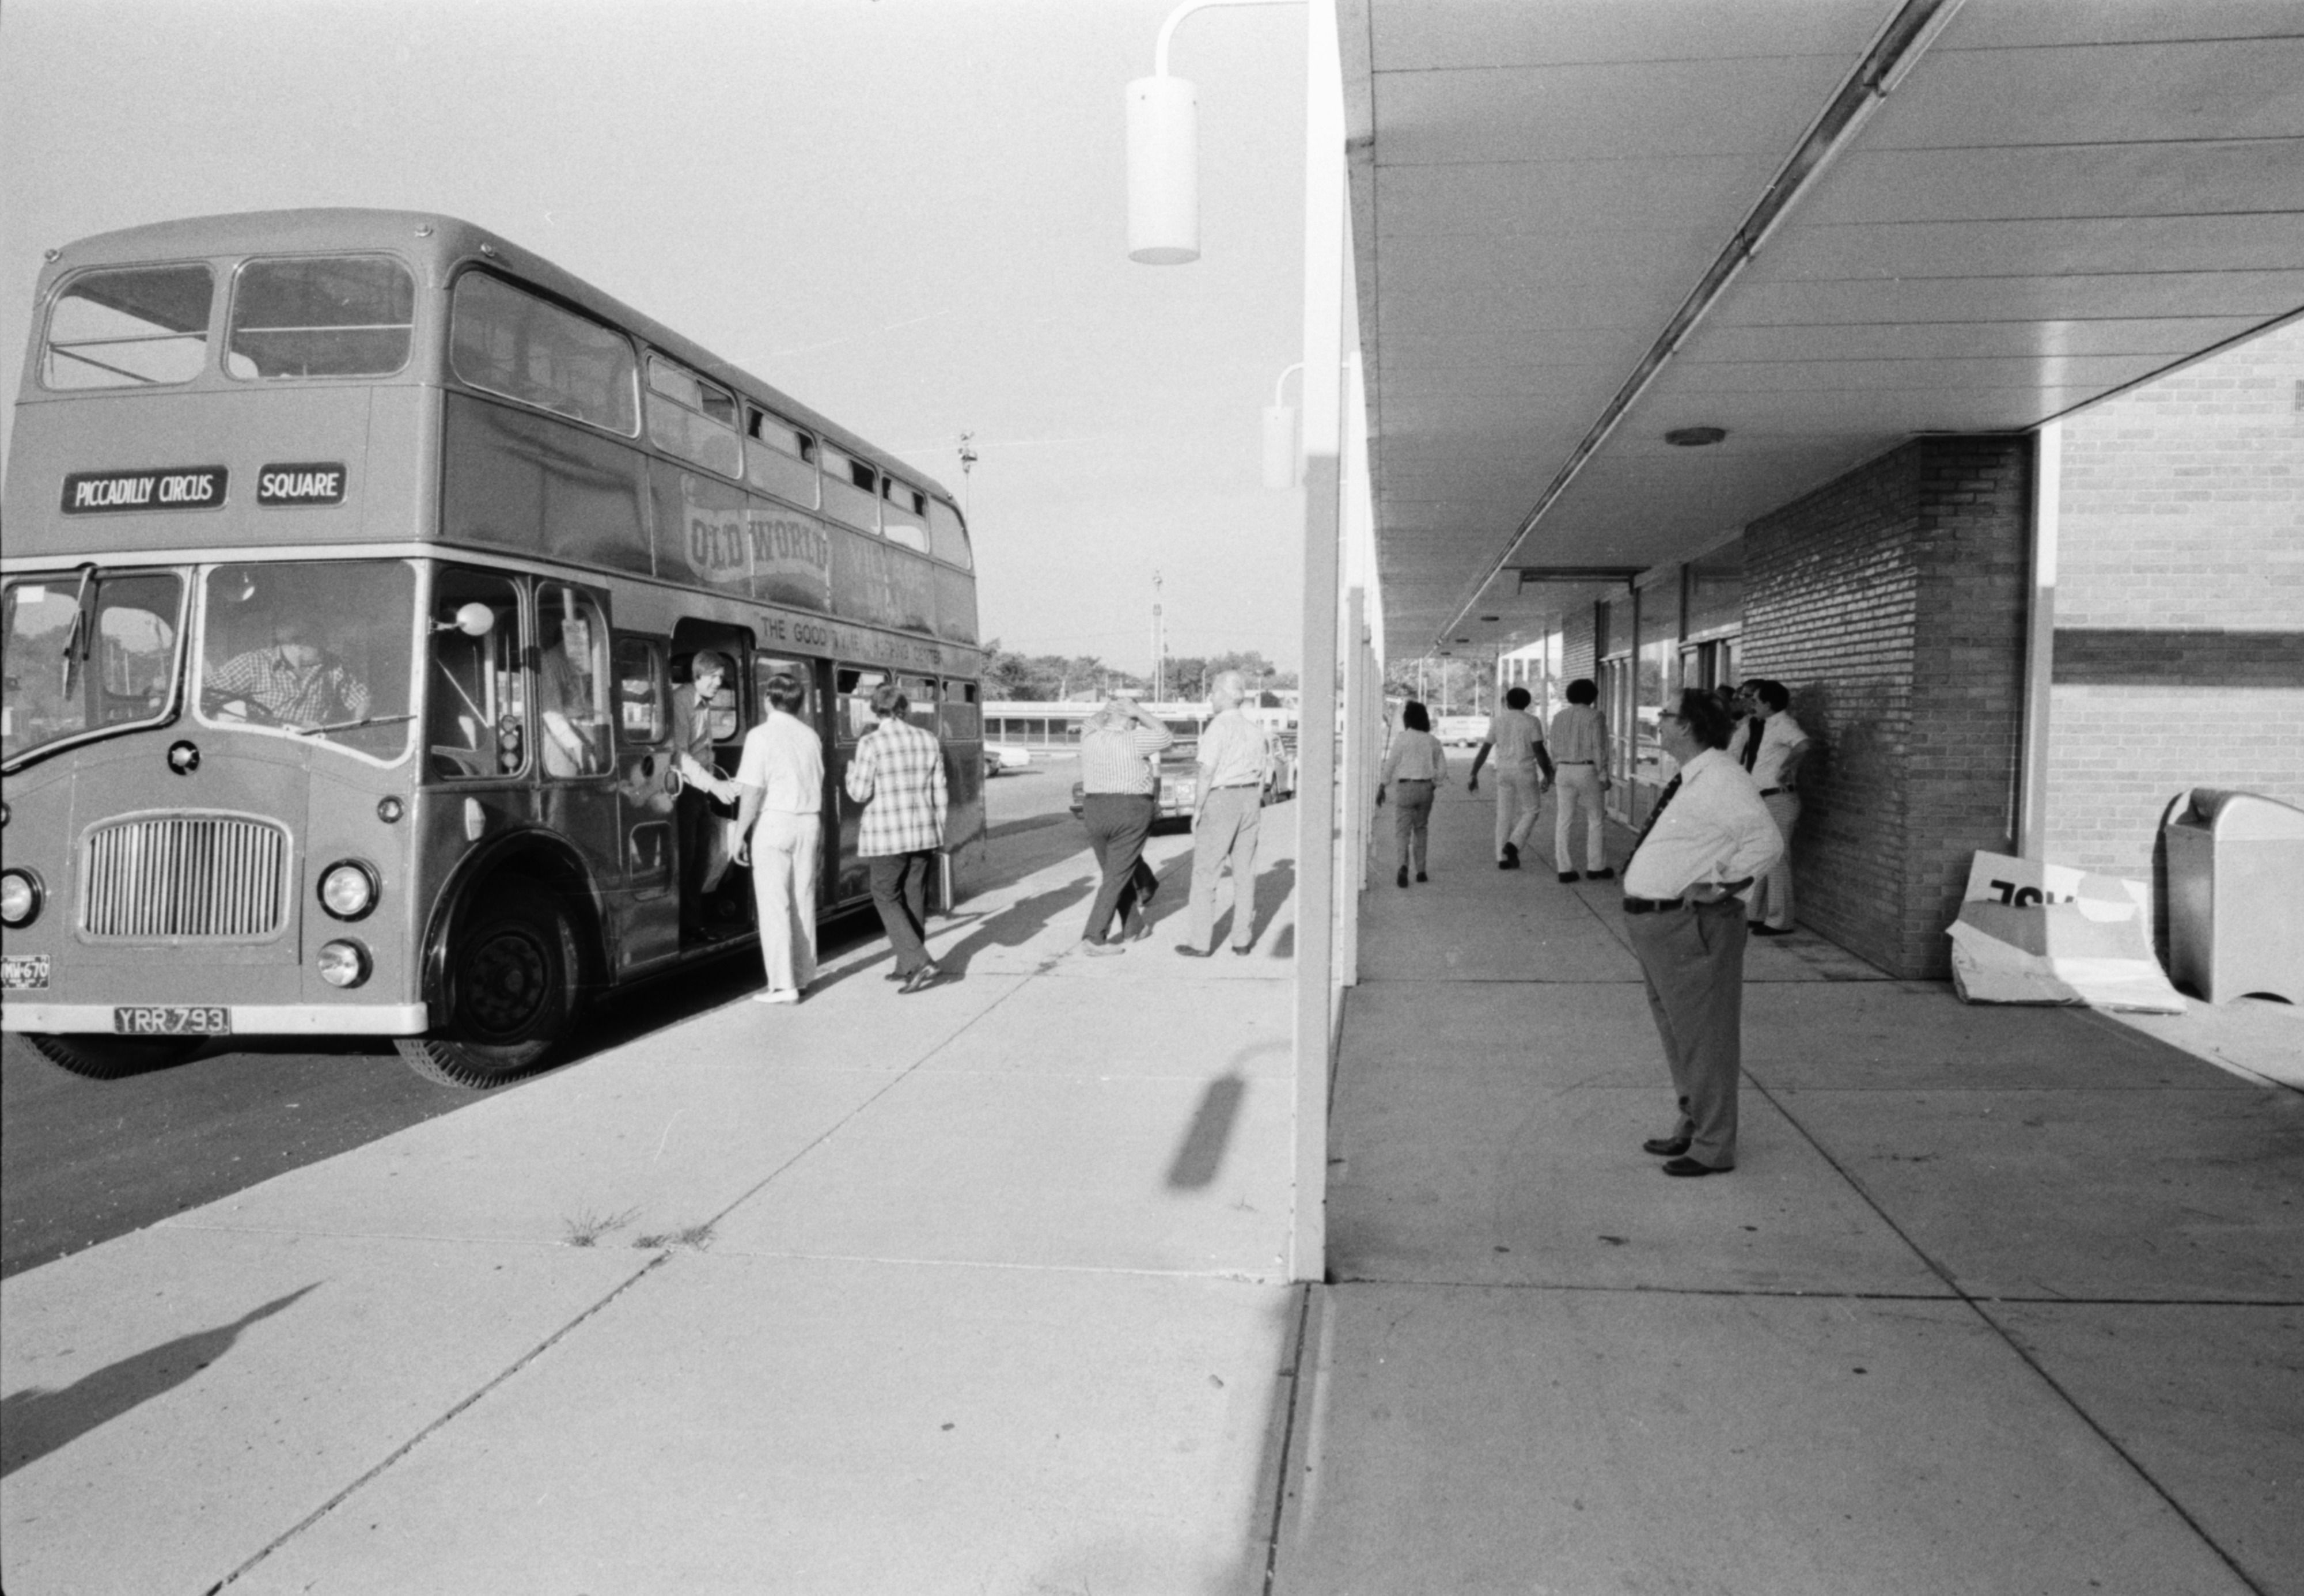 Old World Village Mall's double-decker bus, September 1975 image